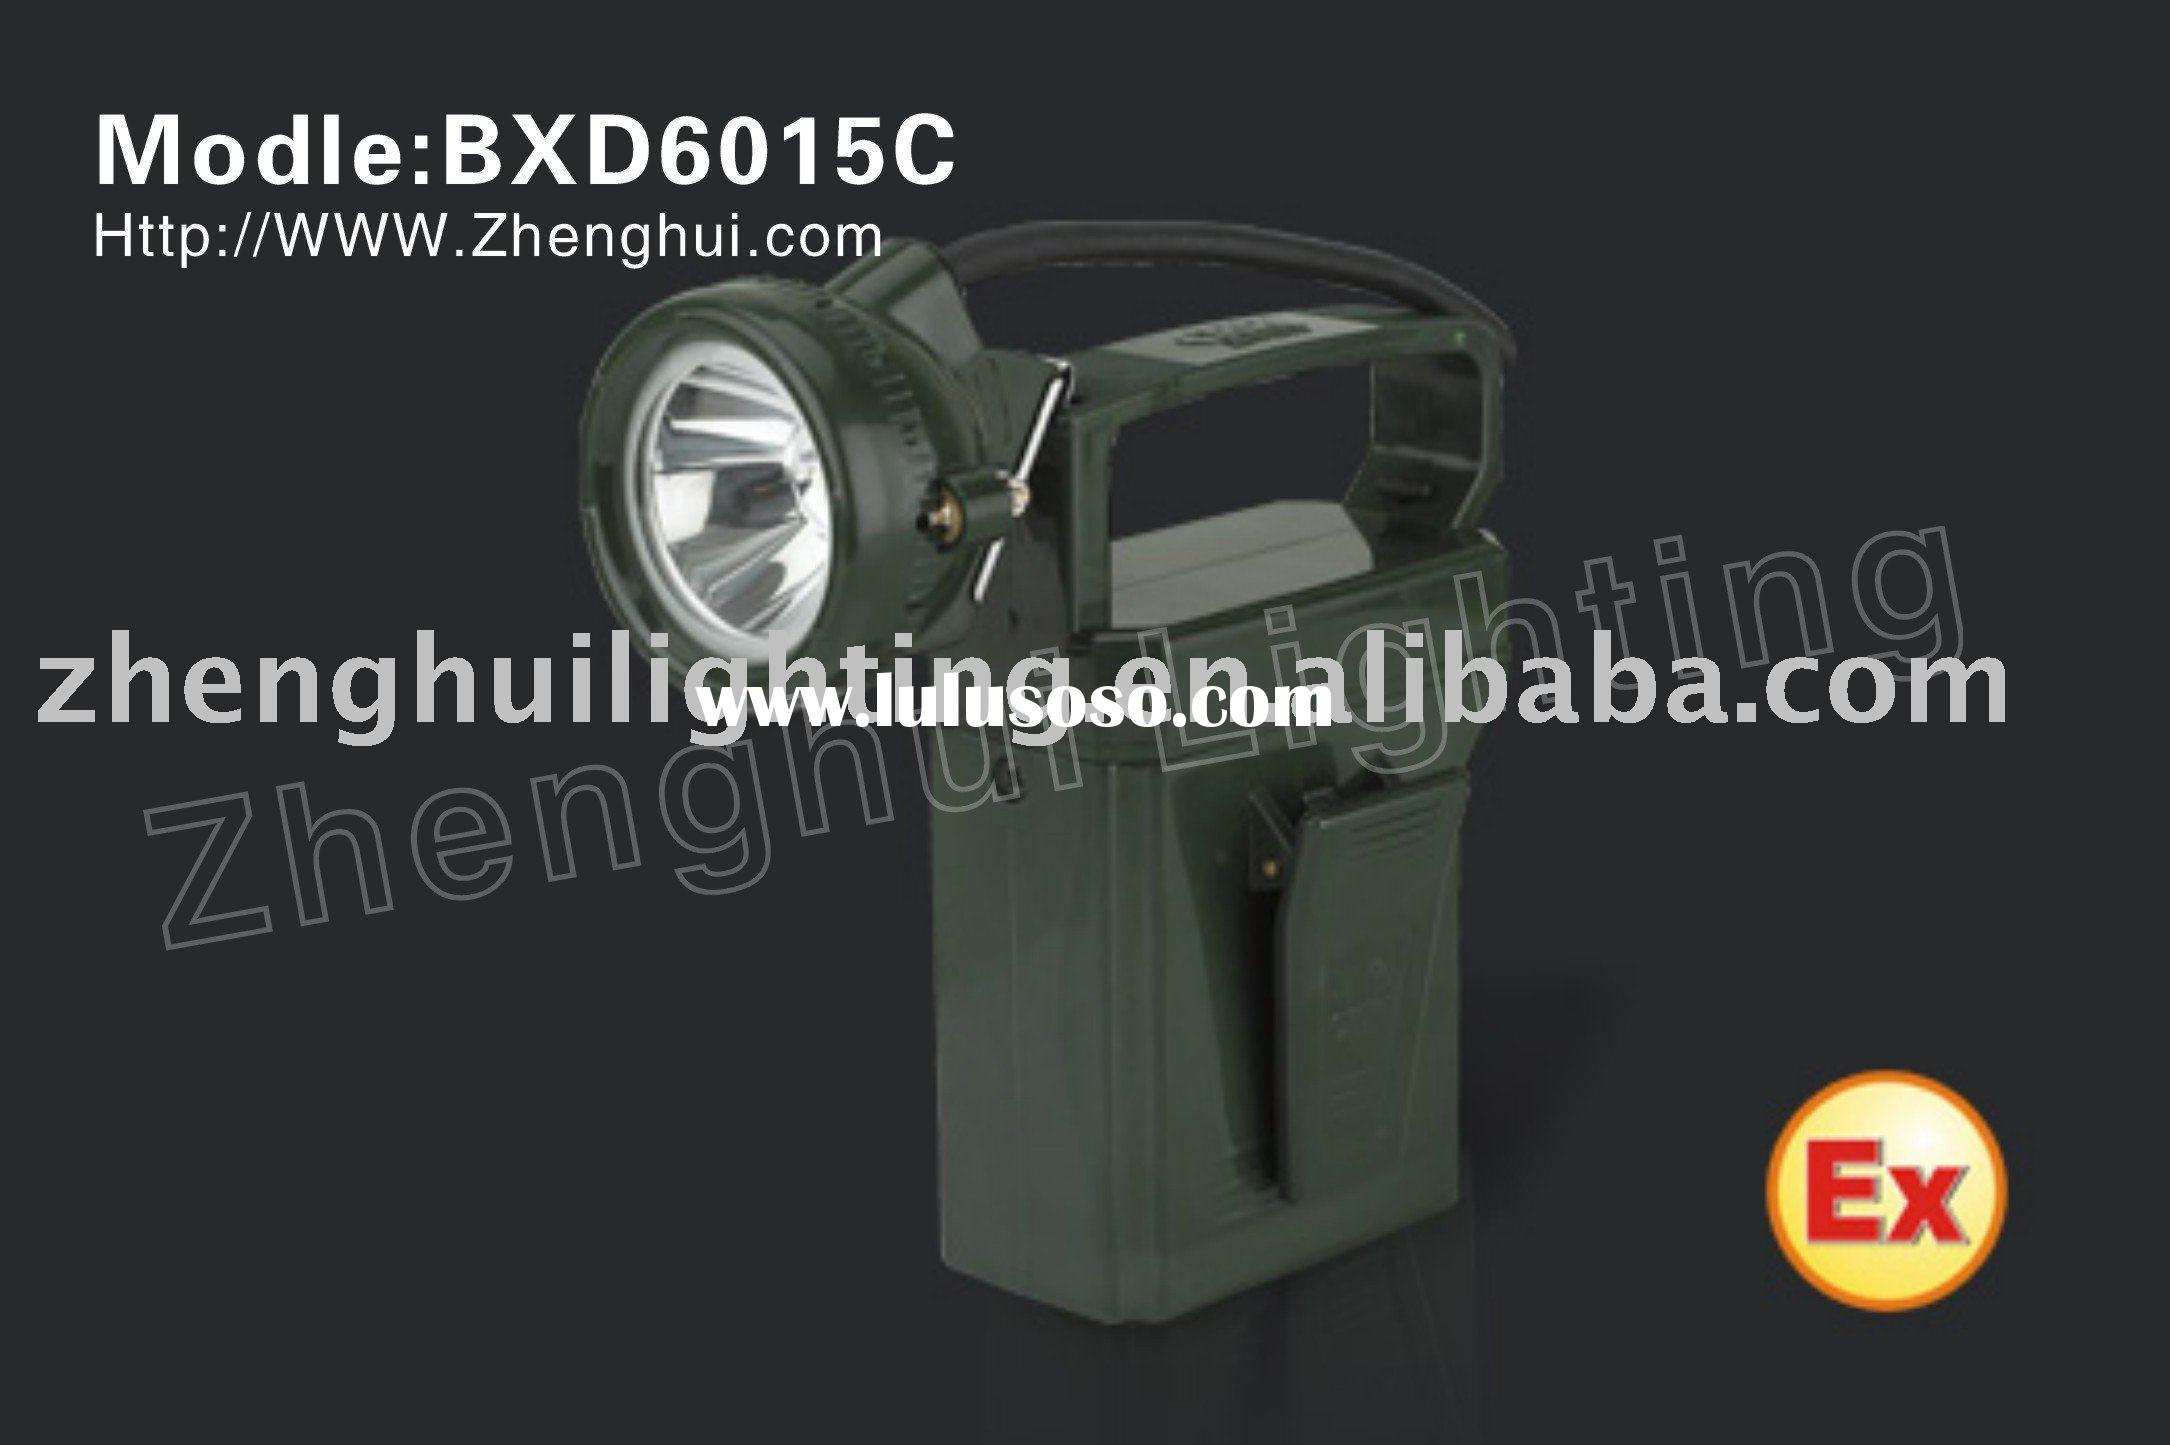 BXD6015C explosion proof LED portable emergency light